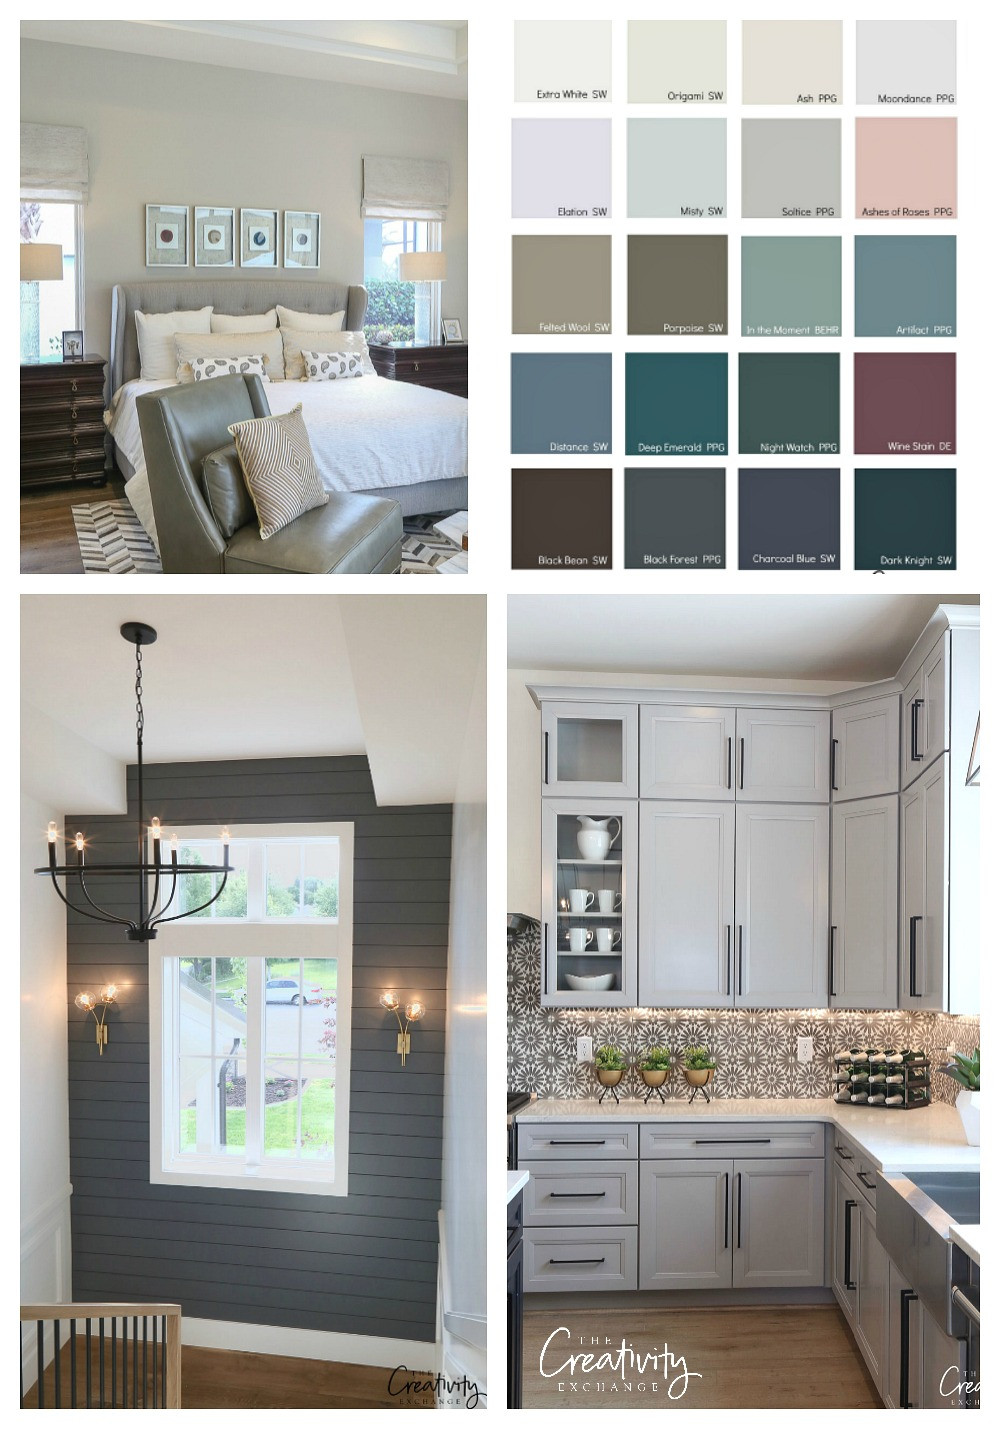 Best ideas about 2019 Interior Paint Colors . Save or Pin 2019 Paint Color Trends and Forecasts Now.